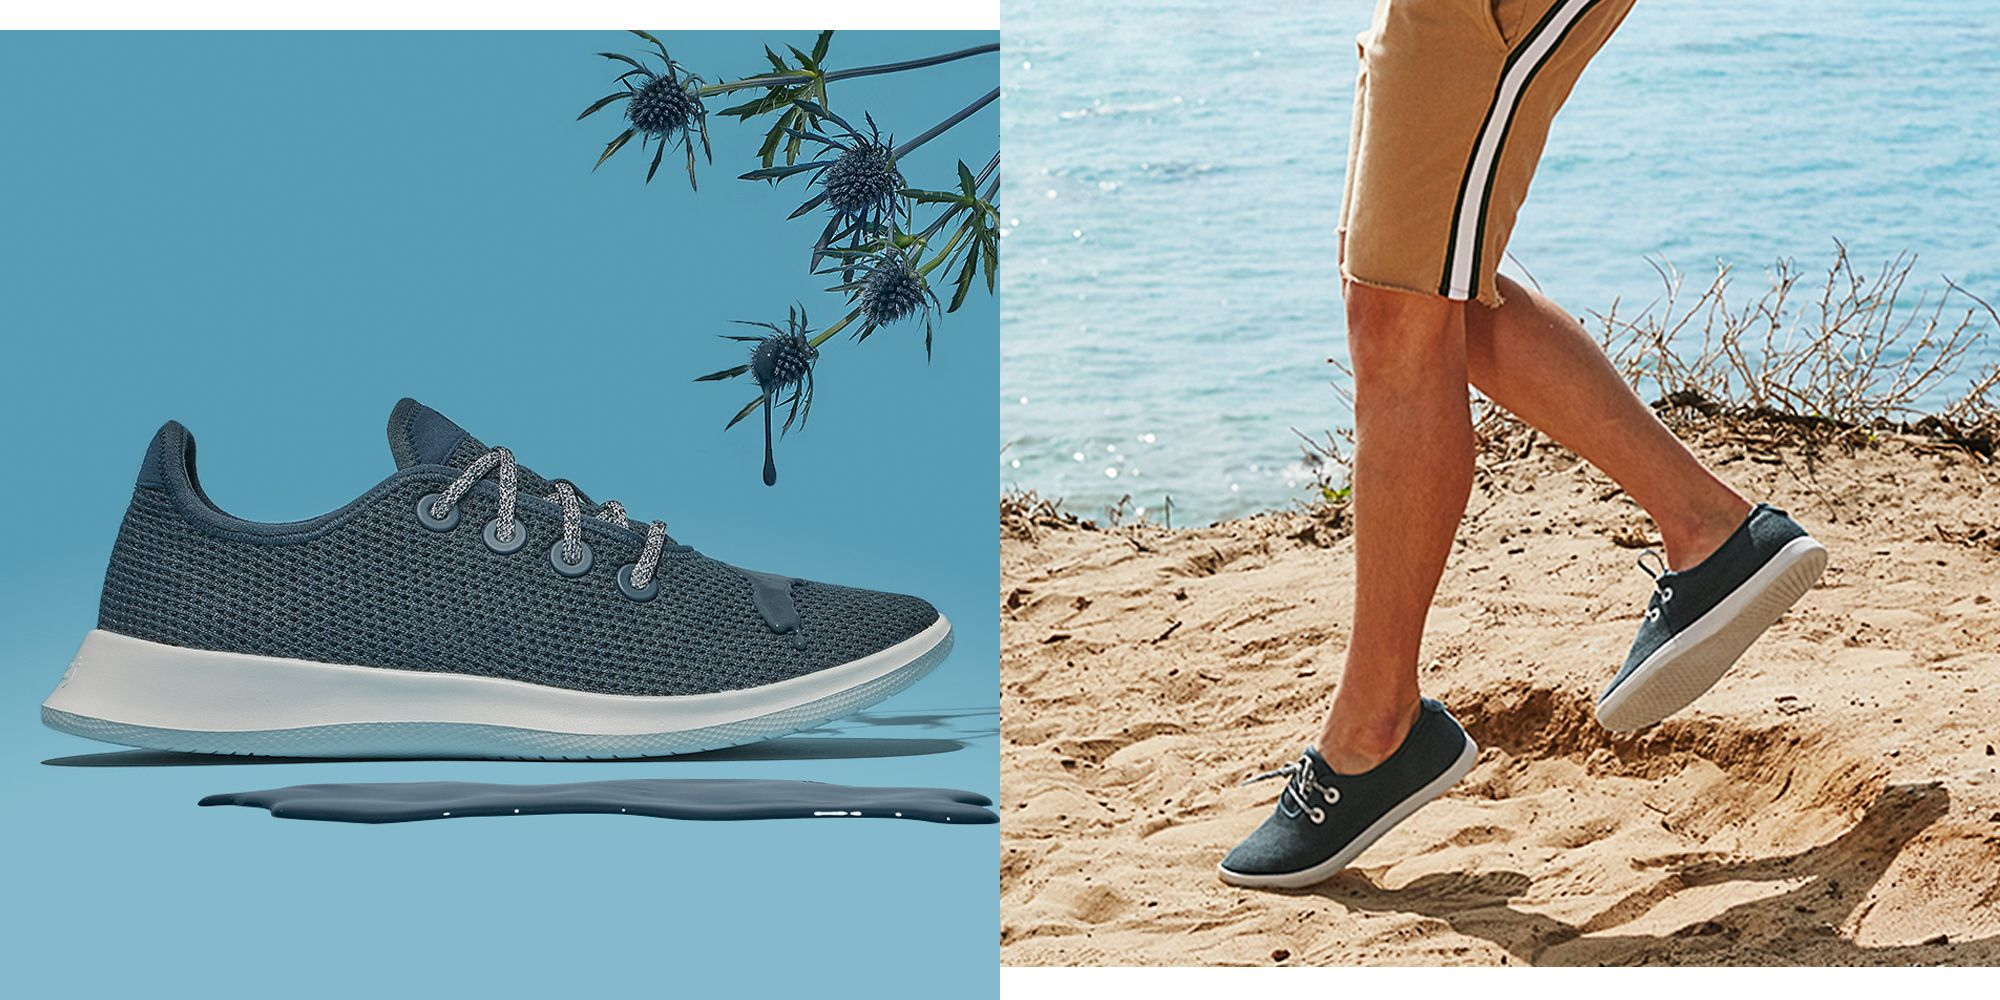 Allbirds' New Sneakers Are Made from Eucalyptus Trees